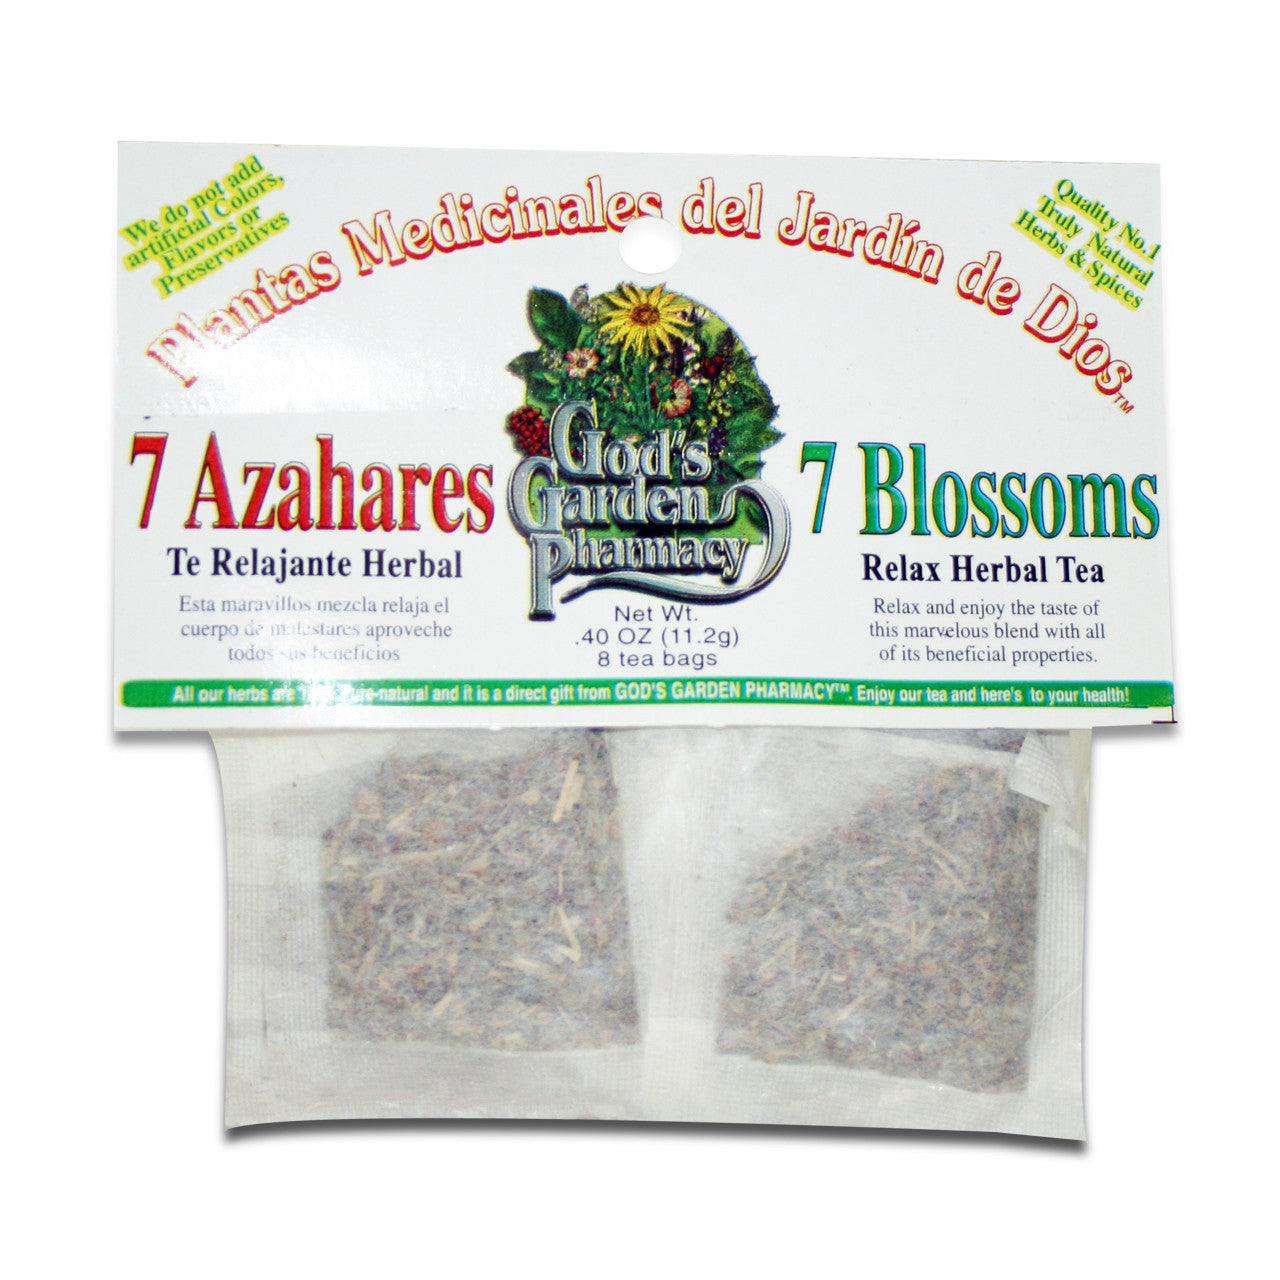 Seven Blossoms Herbal Tea - 7 Azahares